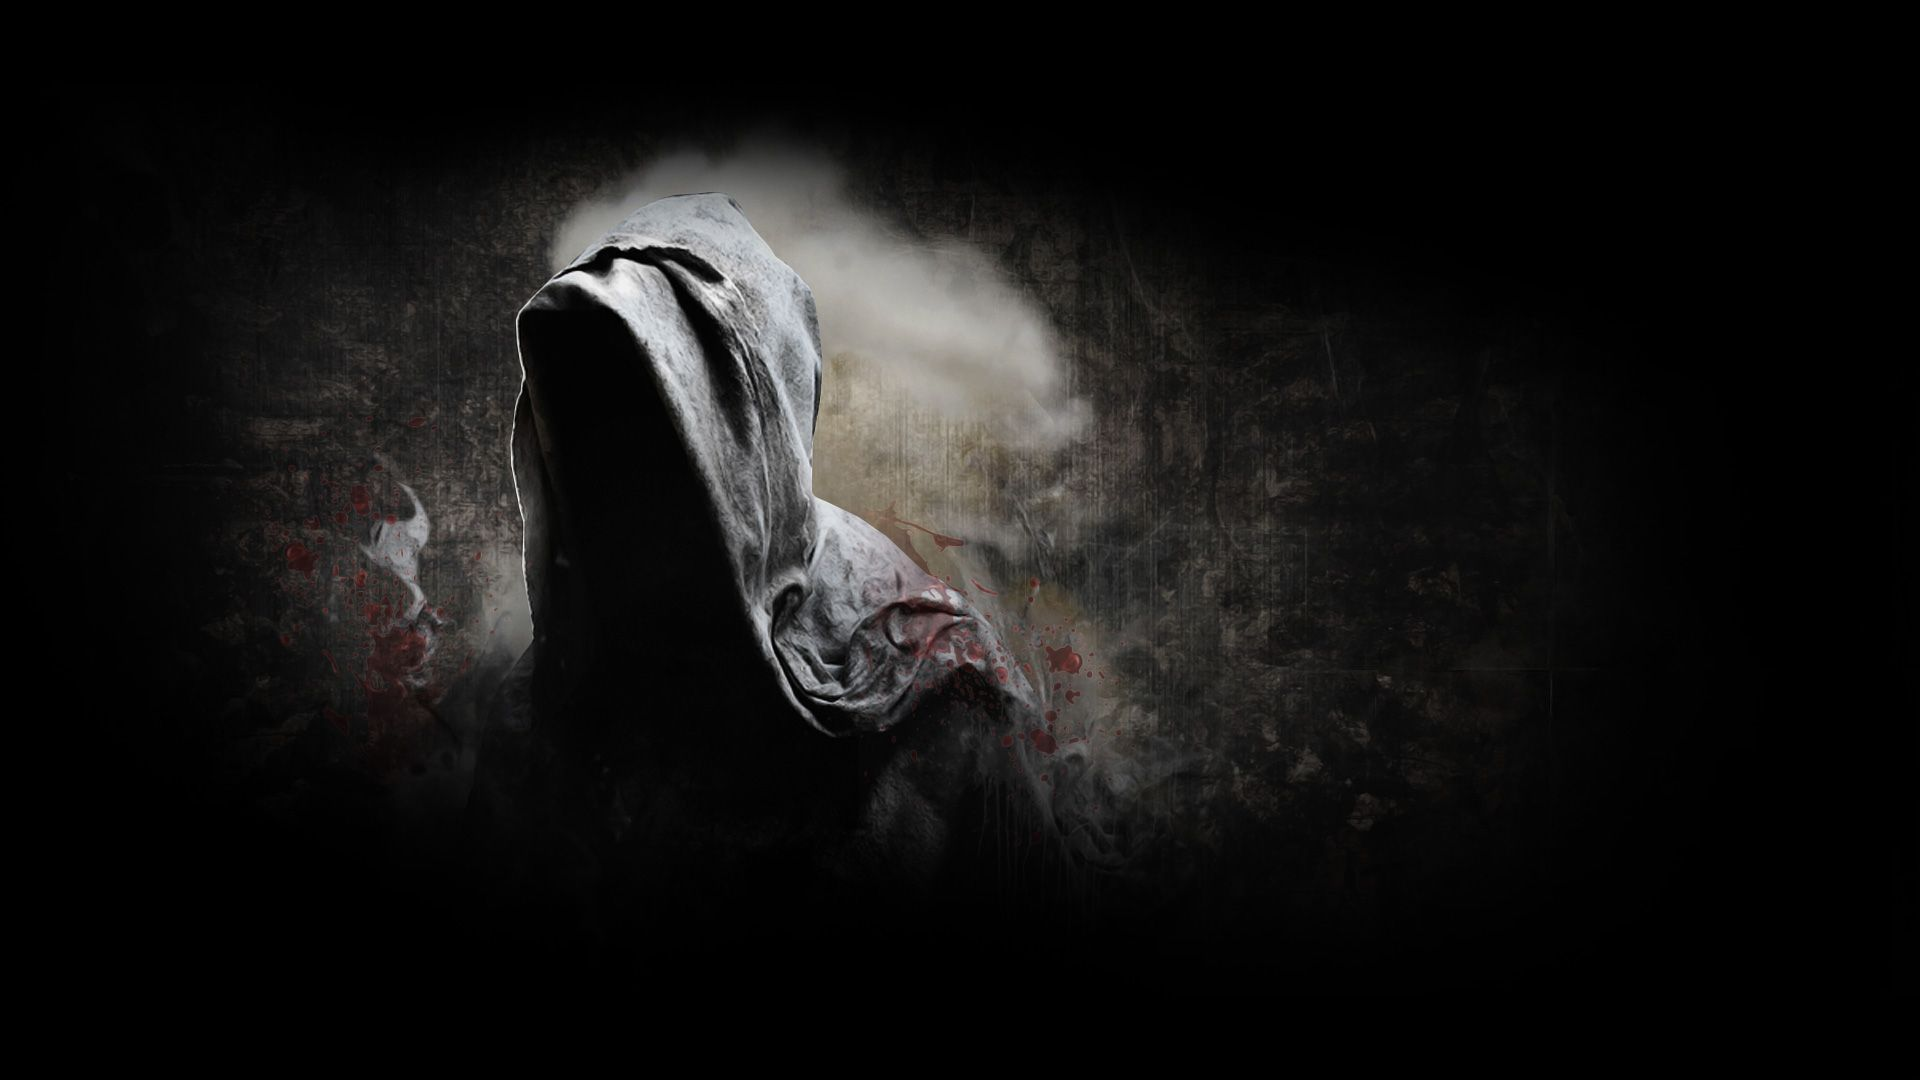 reaper horror anarchy g wallpaper (With images) Grim